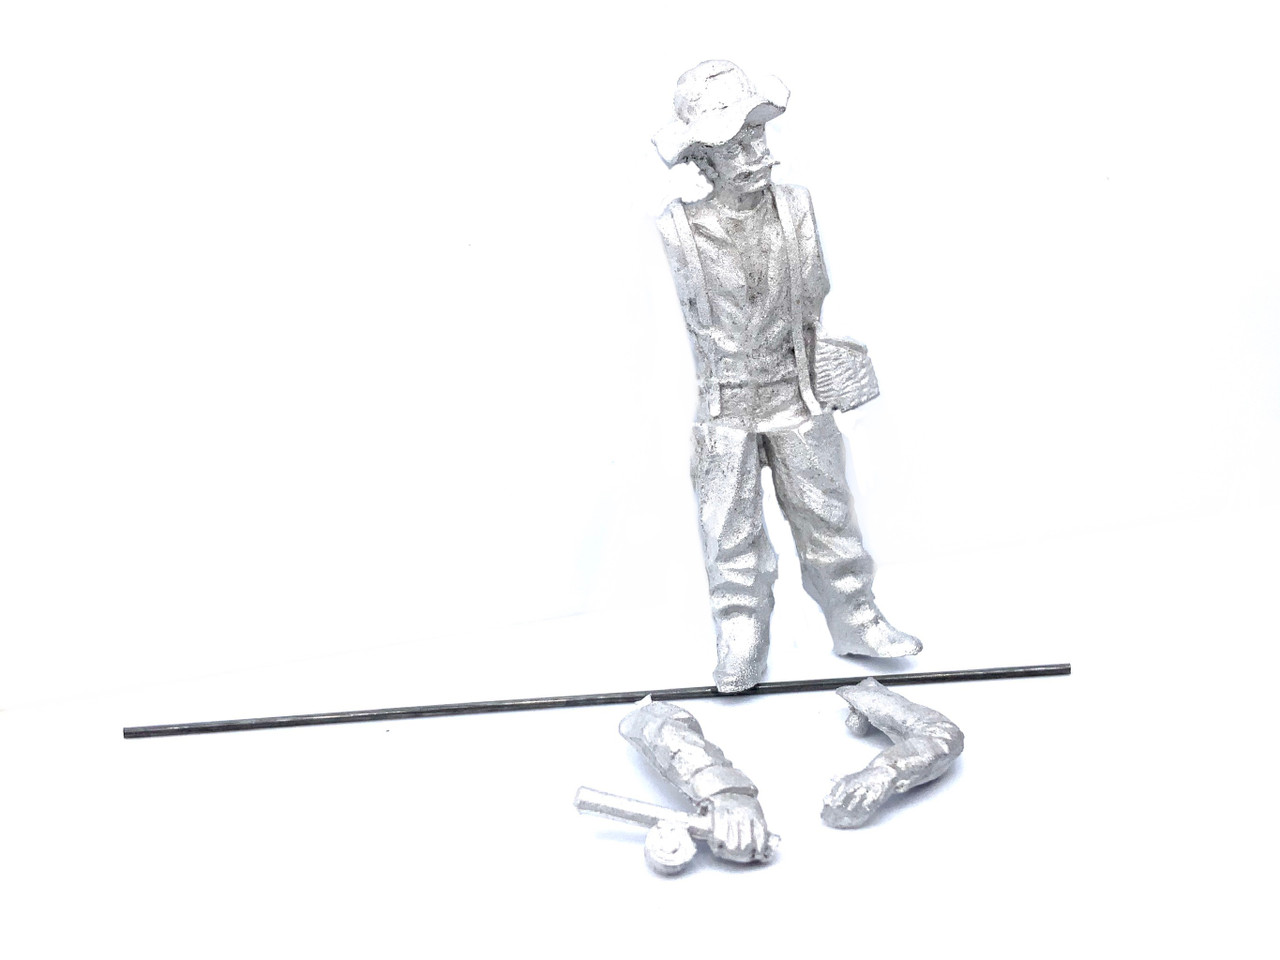 48-1447 Man Fishing Wearing Waders Fisherman O Scale FKA Keil Line